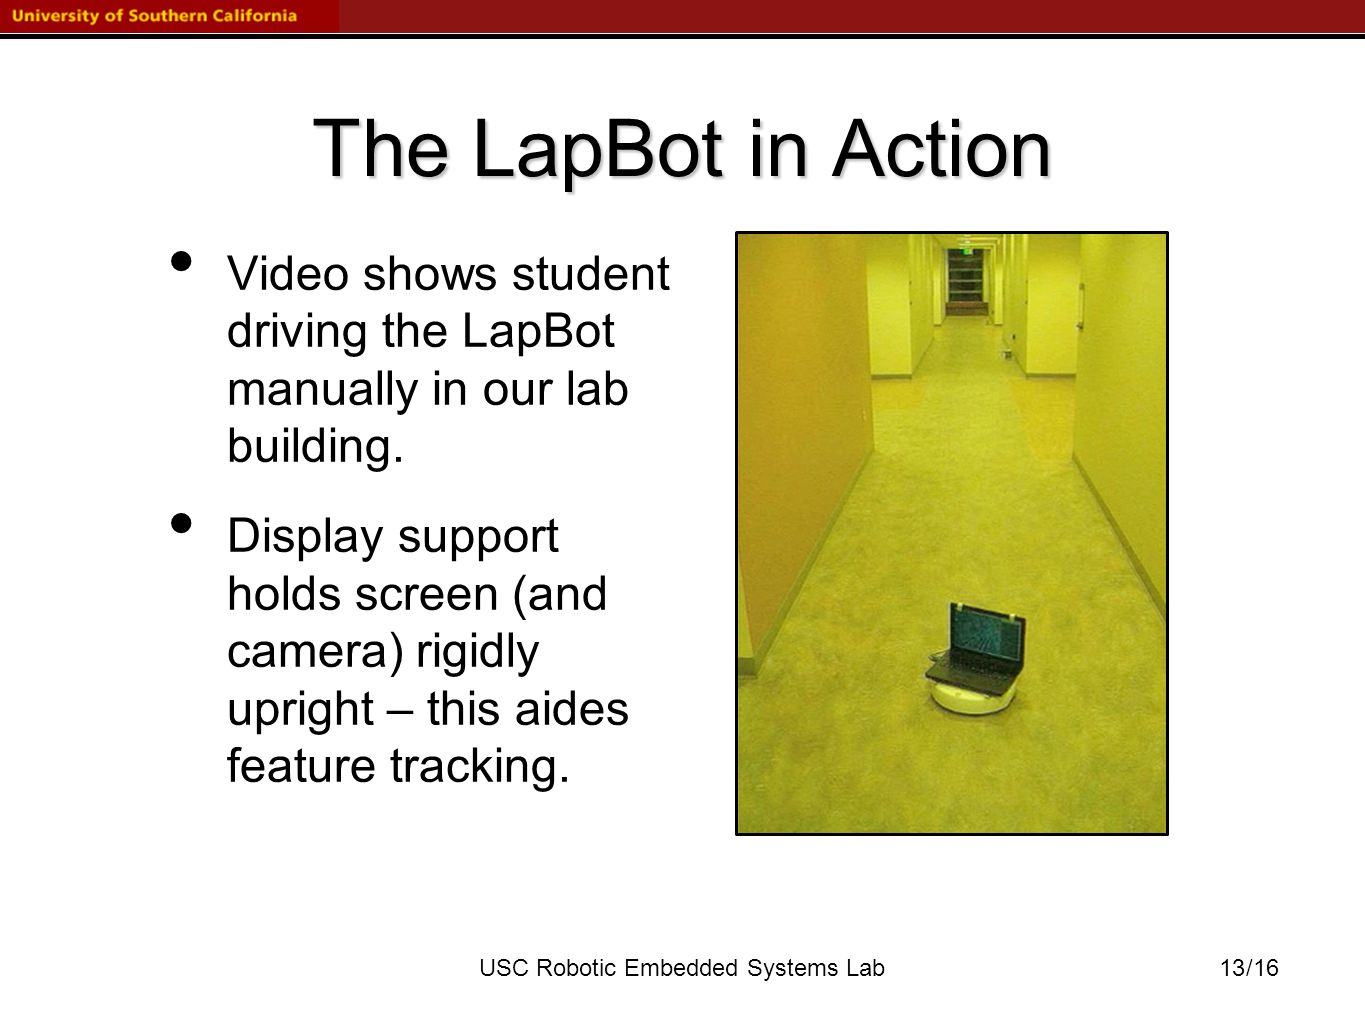 /16USC Robotic Embedded Systems Lab The LapBot in Action Video shows student driving the LapBot manually in our lab building.